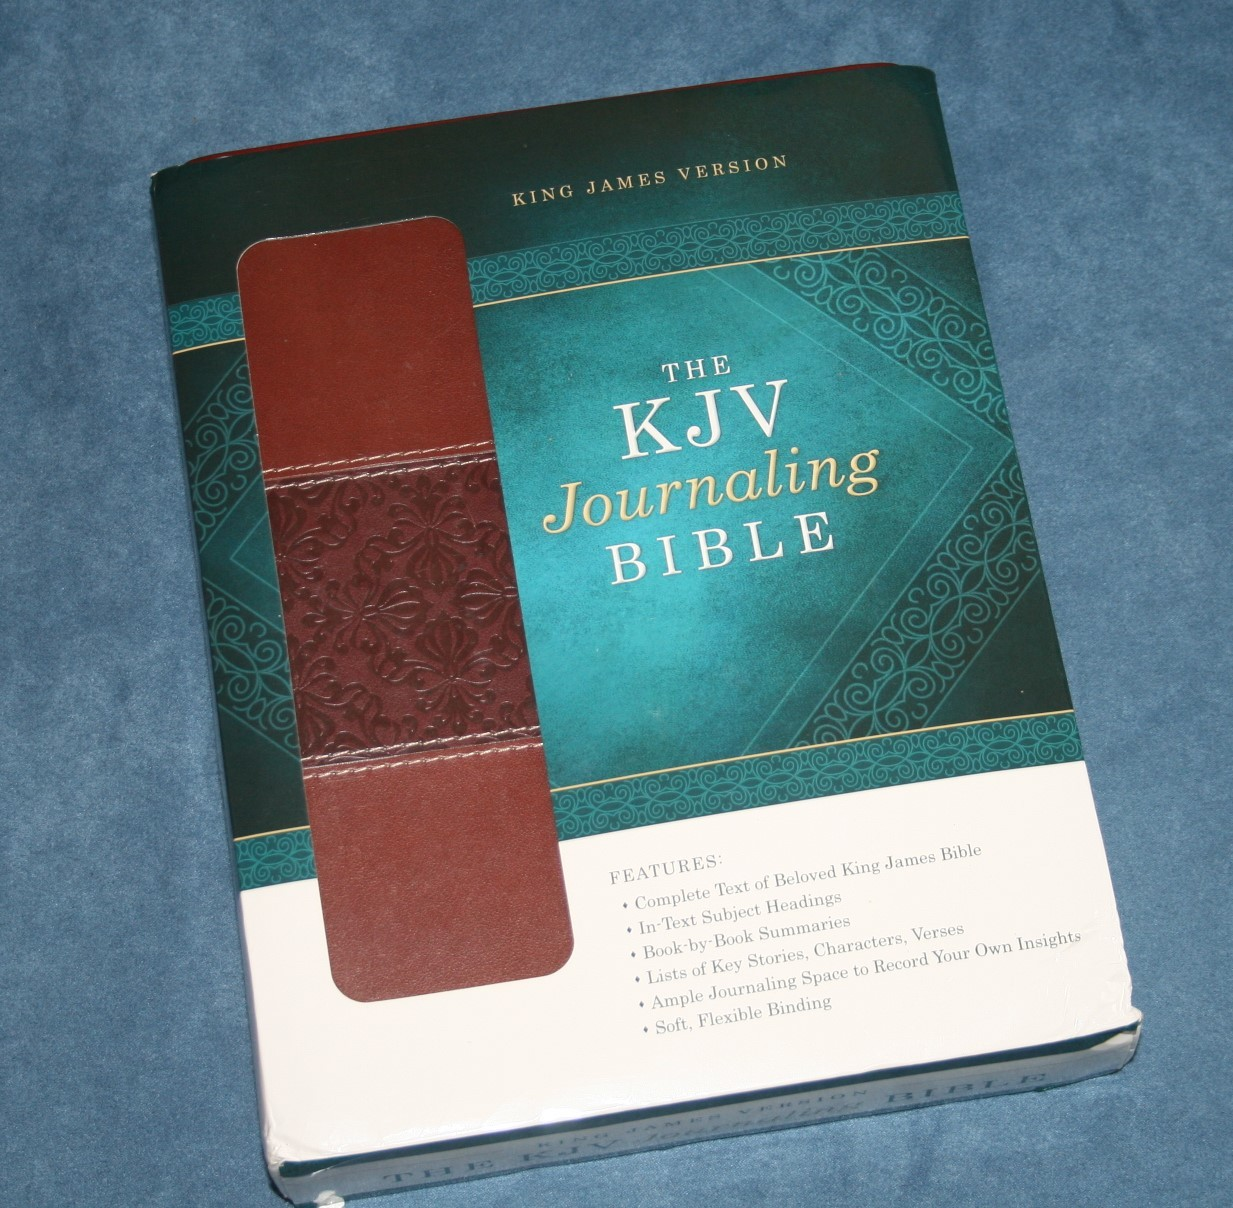 Barbour Kjv Journaling Bible Review Bible Buying Guide